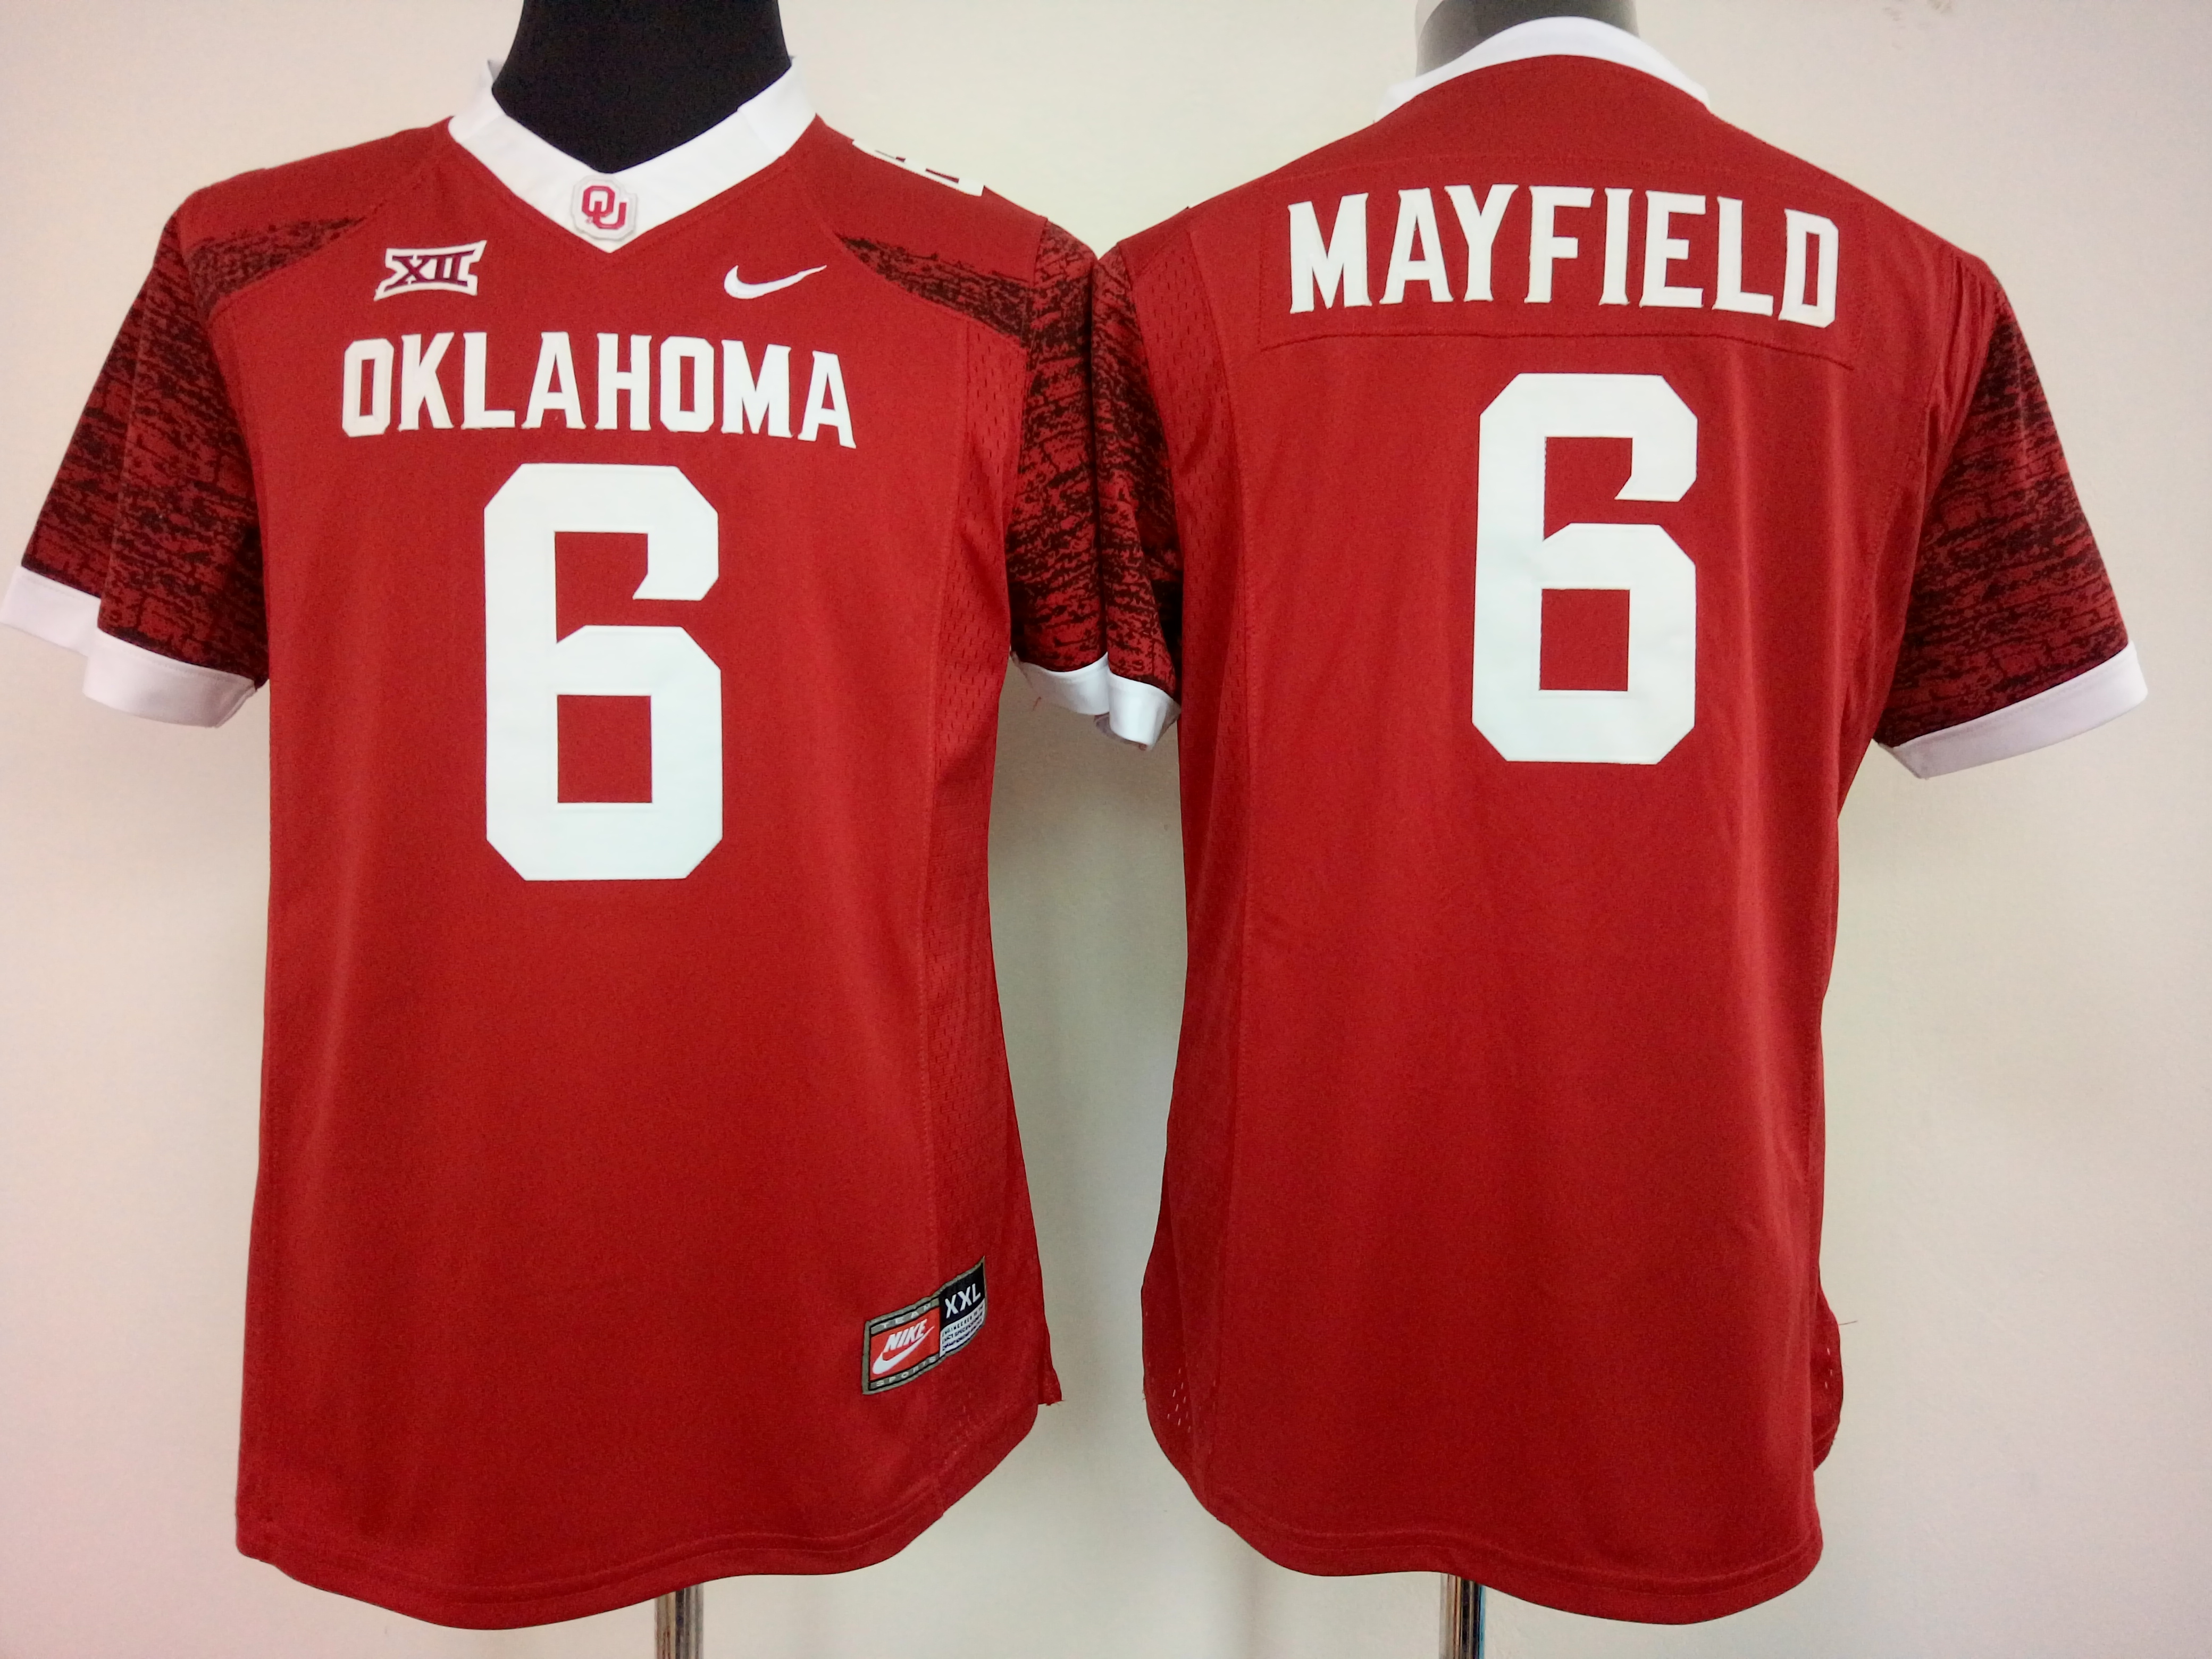 NCAA Womens Oklahoma Sooners Red 6 Mayfield jerseys